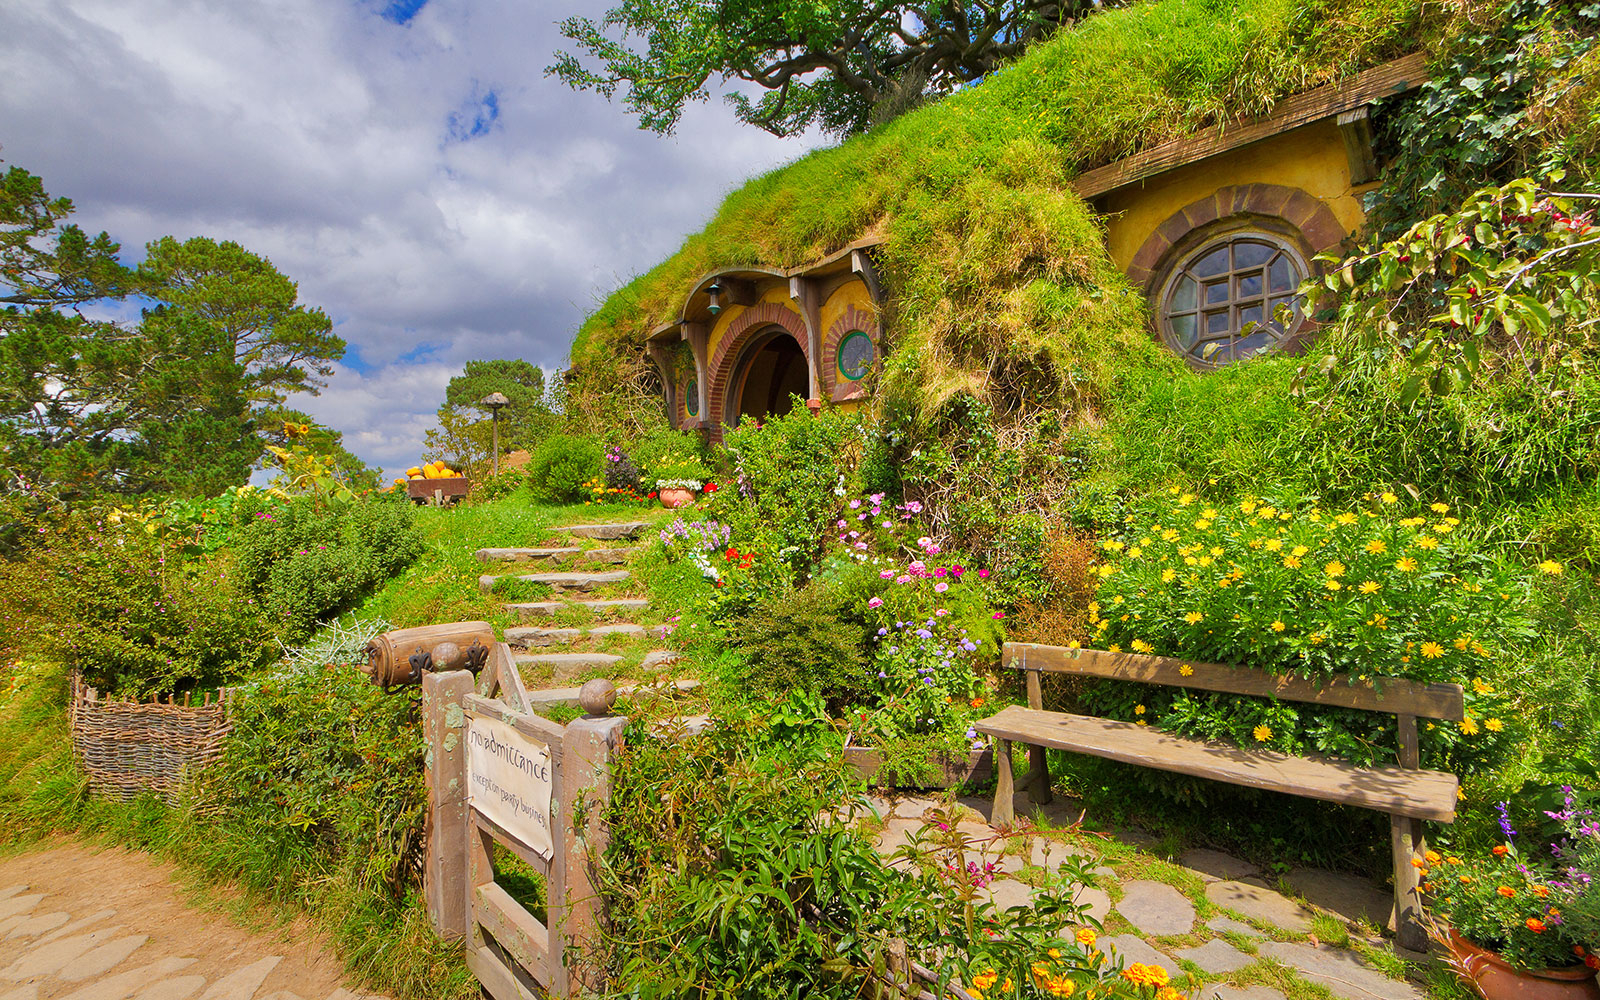 Hobbiton Movie Set Tour in New Zealand